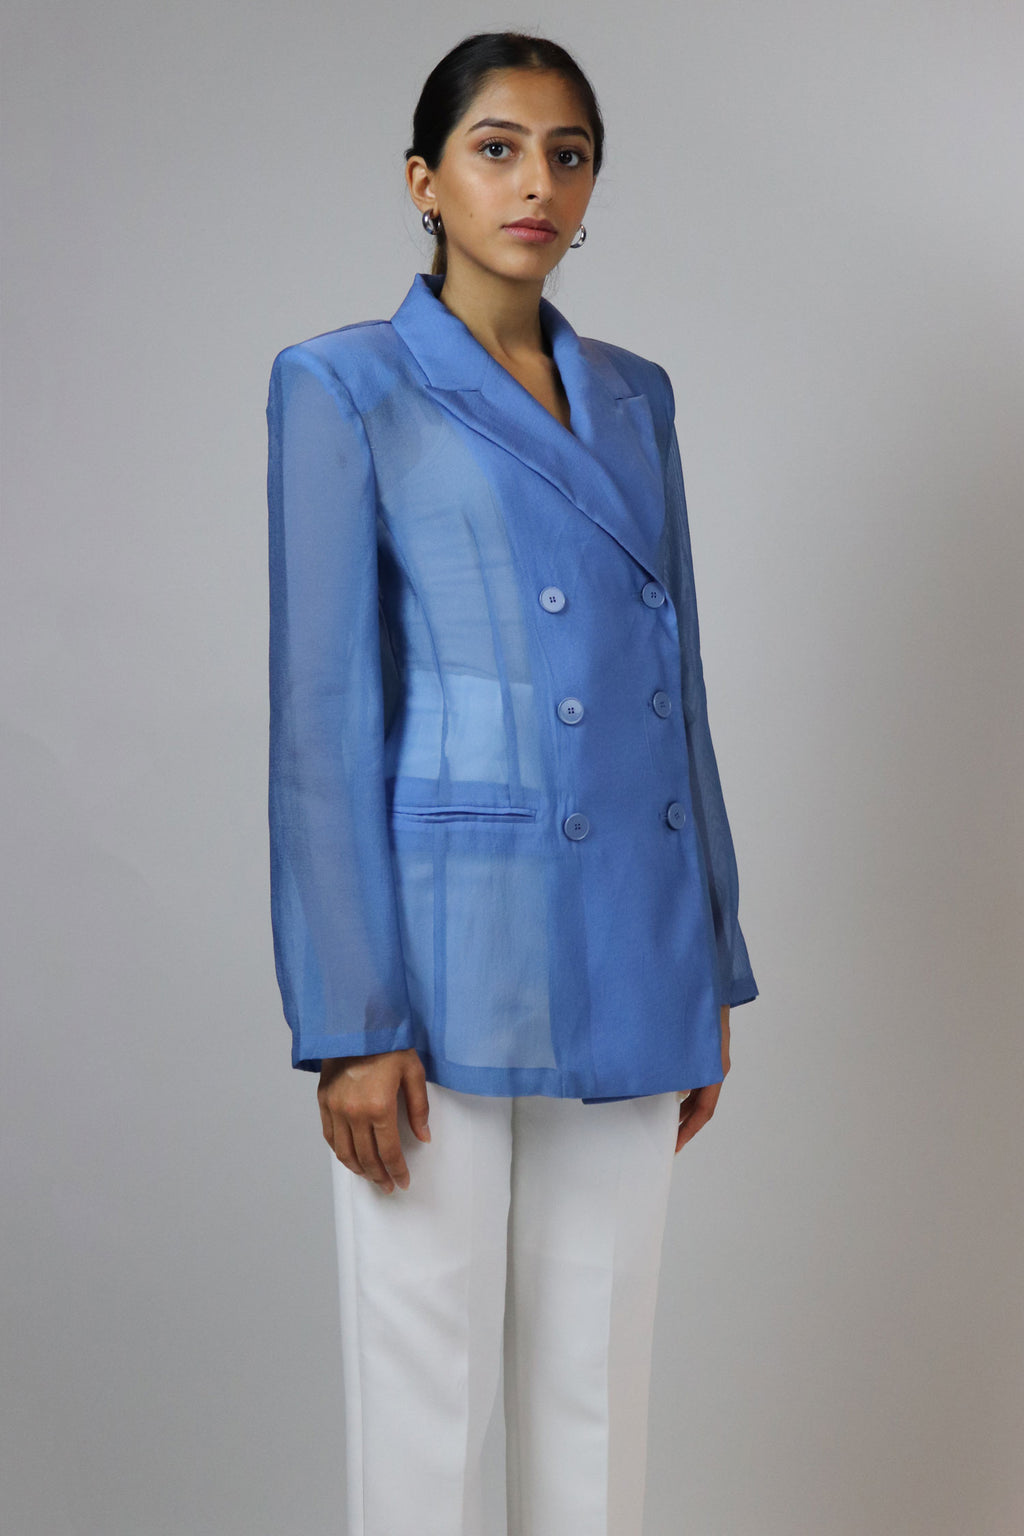 WANTS Blue Sheer Double Breasted Blazer